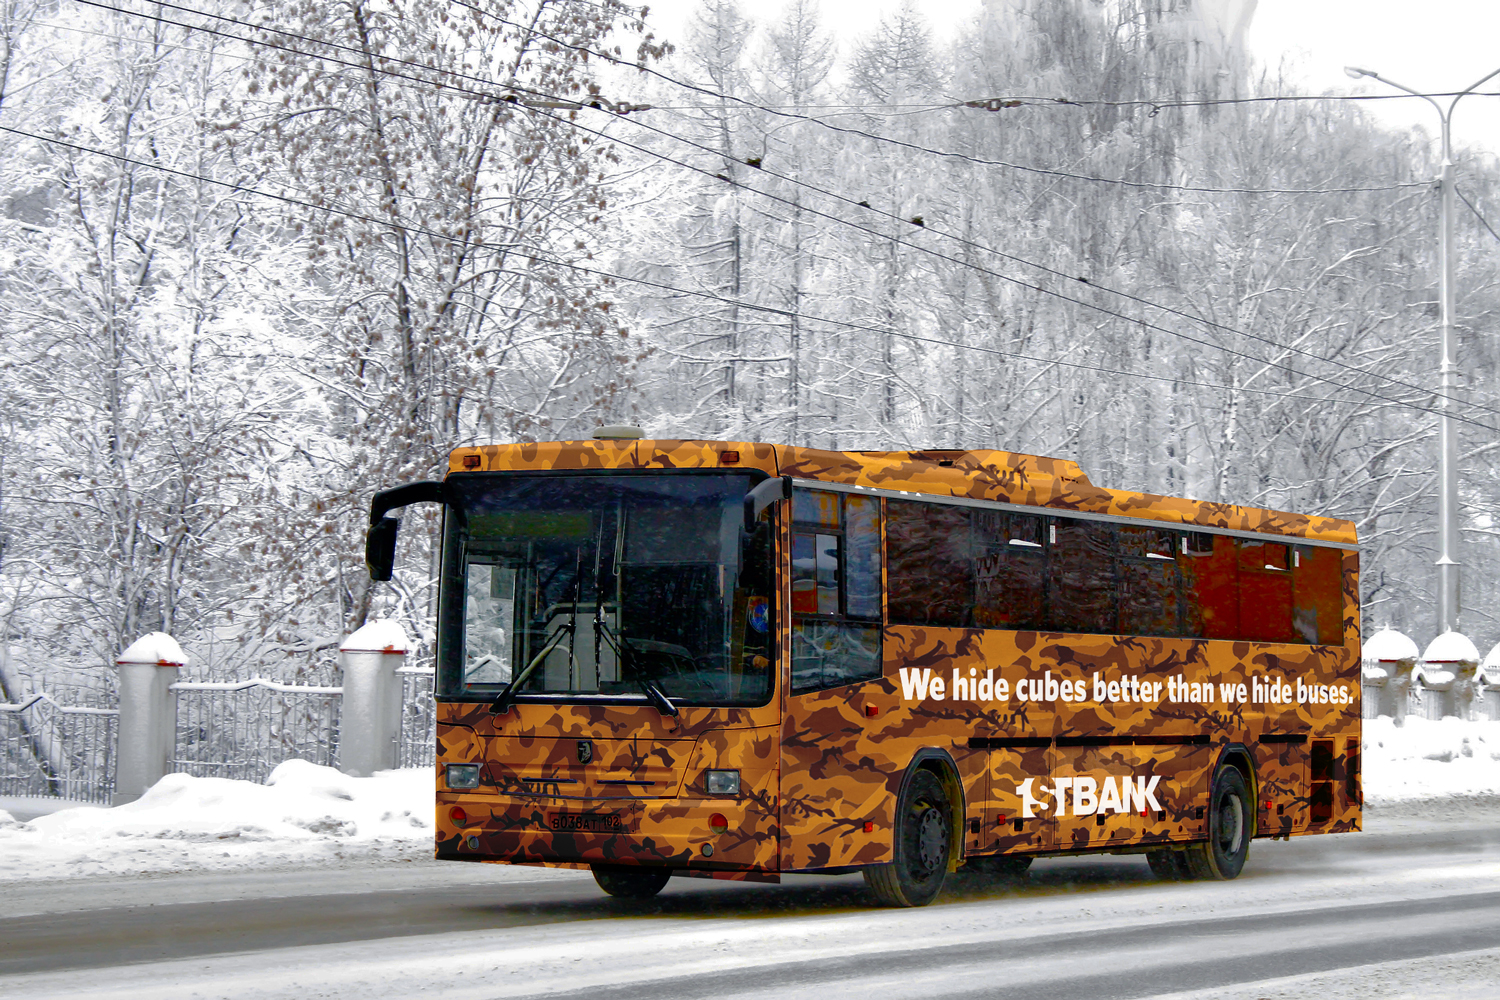 City buses during the Capture the Cube campaign.